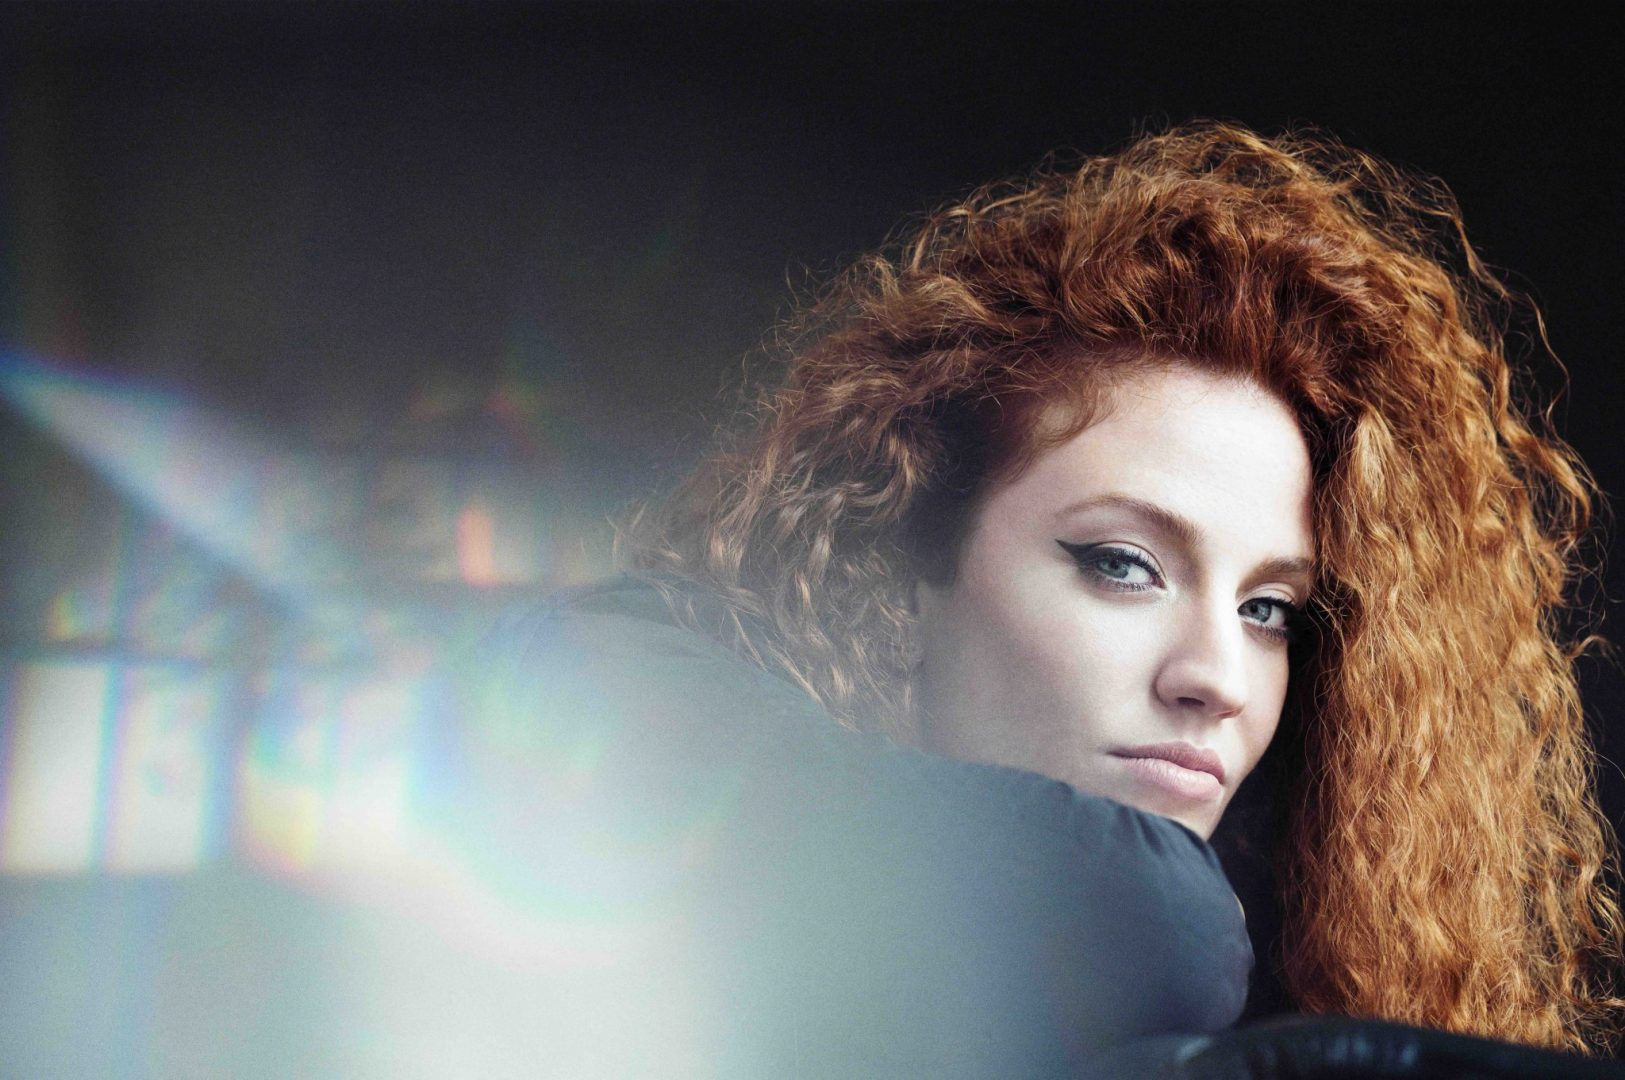 I Cry When I Laugh singer Jess Glynne